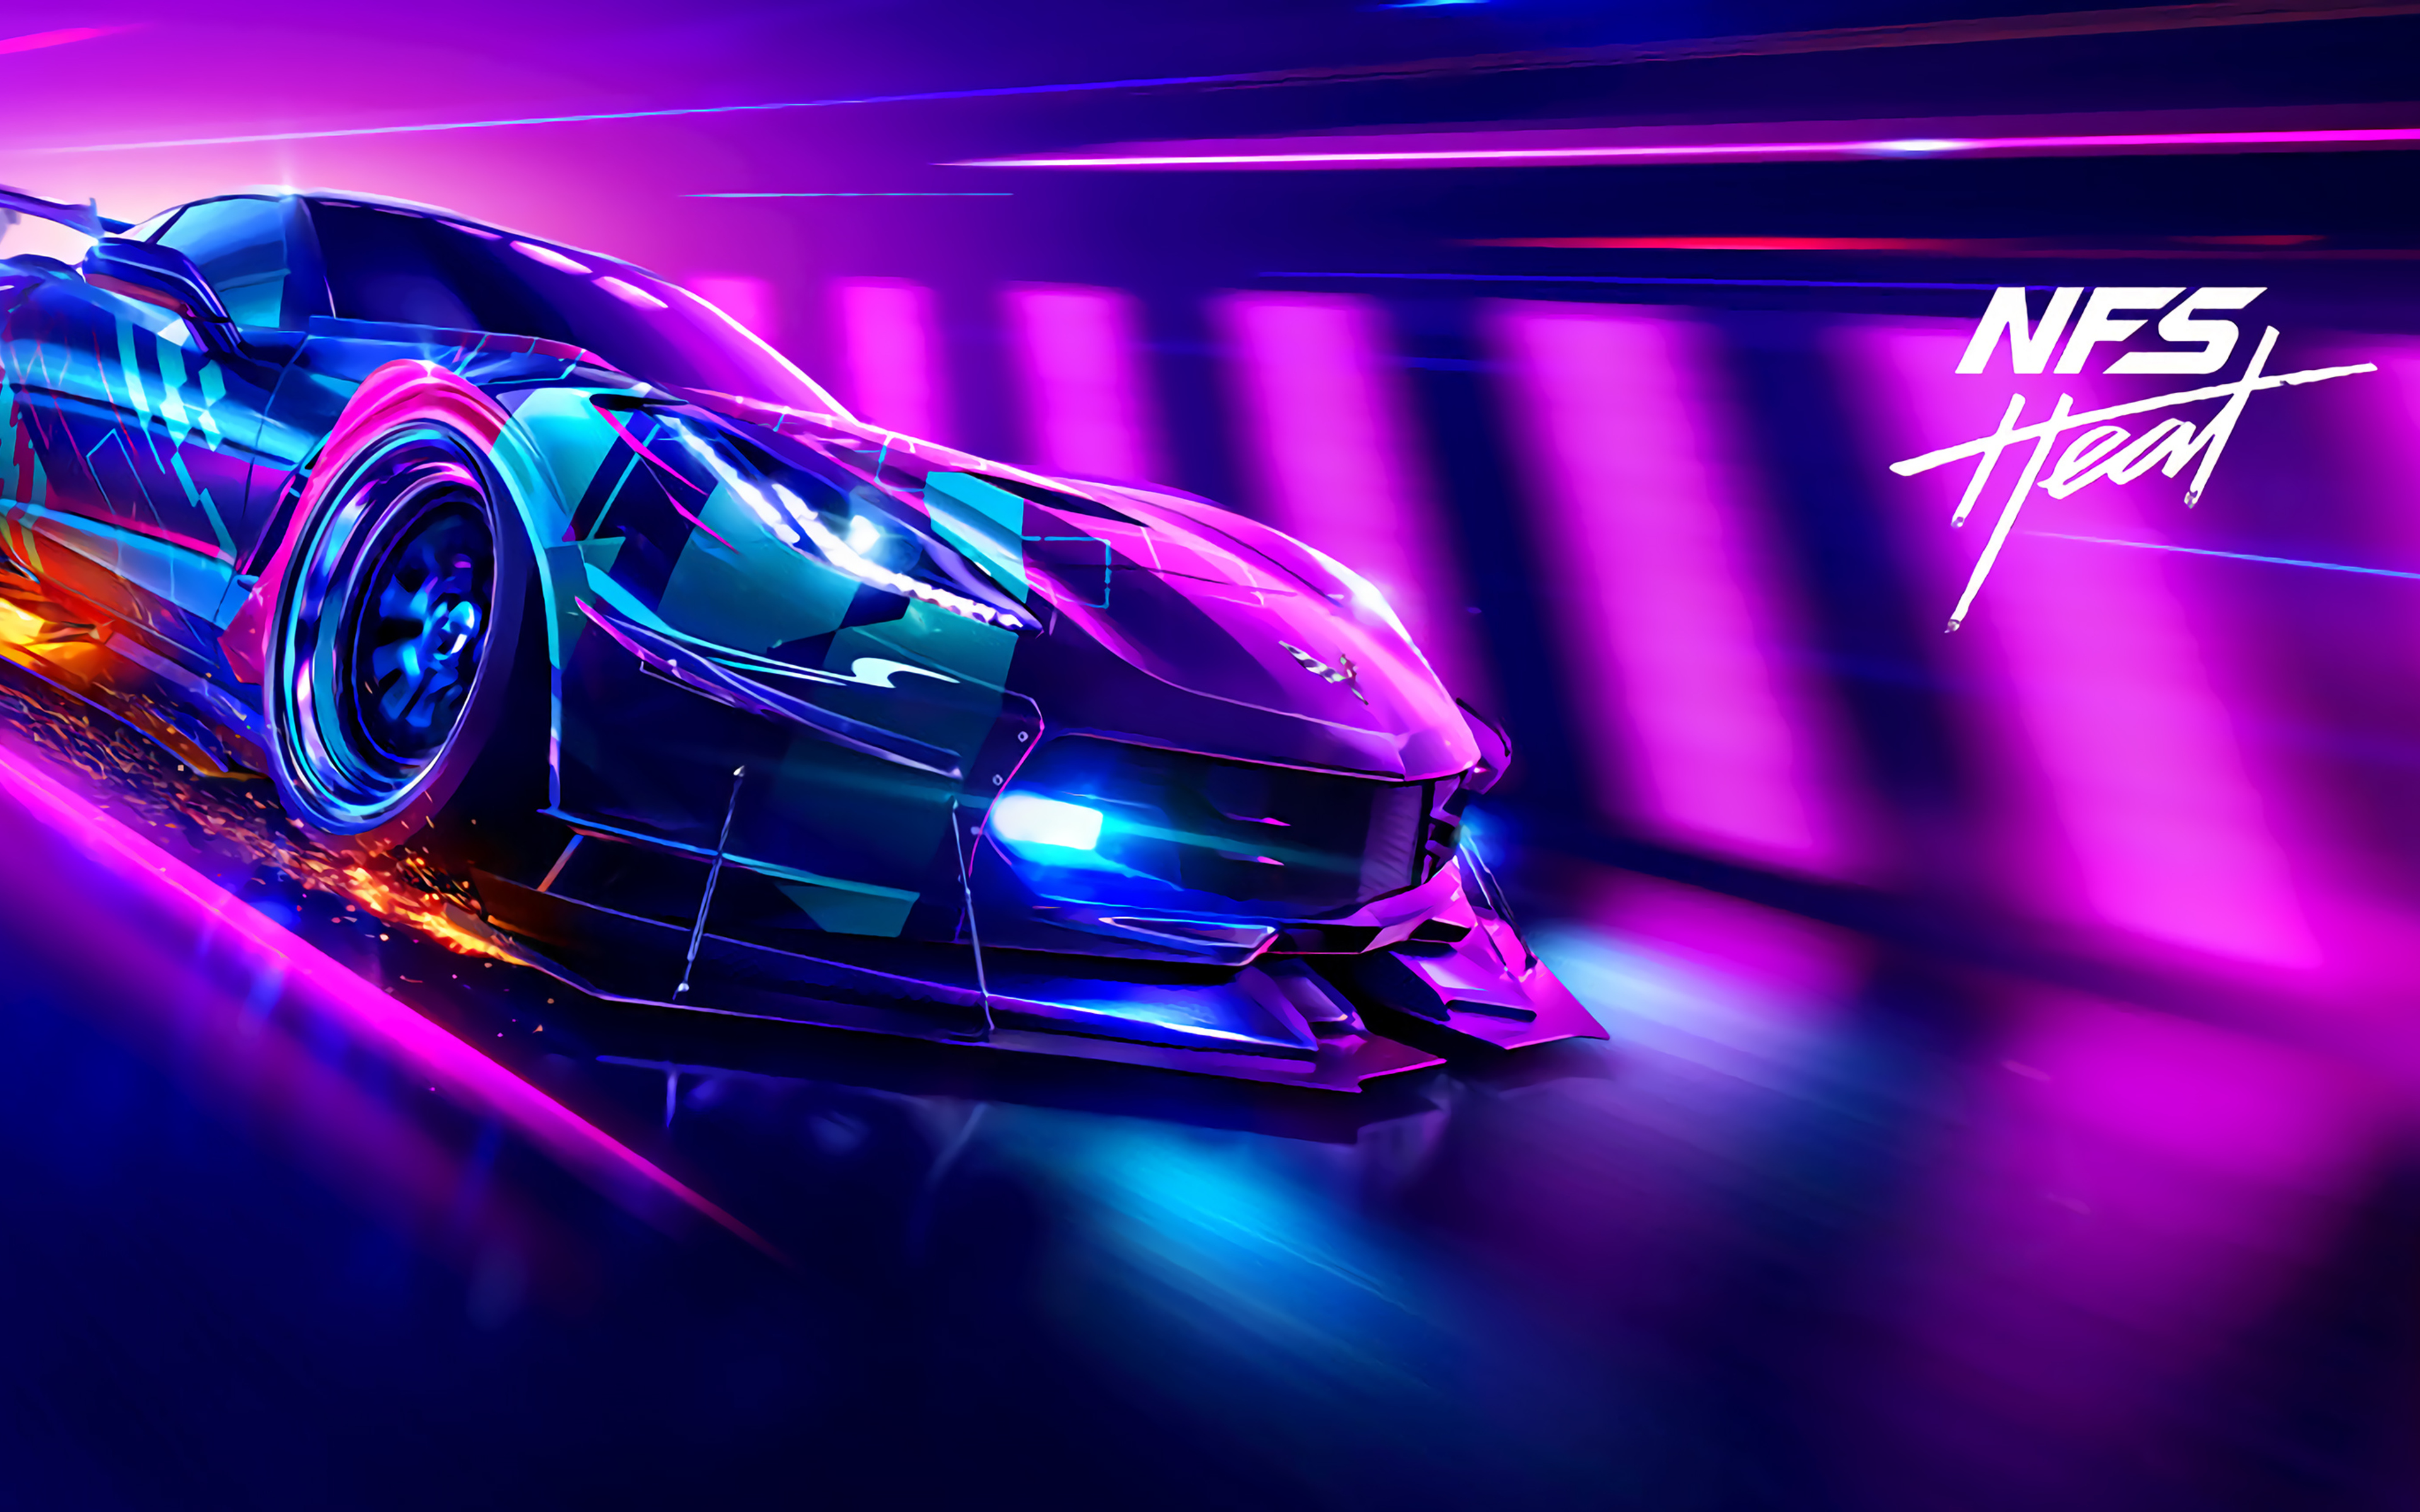 3840x2400 Nfs Heat 4k HD 4k Wallpapers, Images, Backgrounds, Photos and Pictures